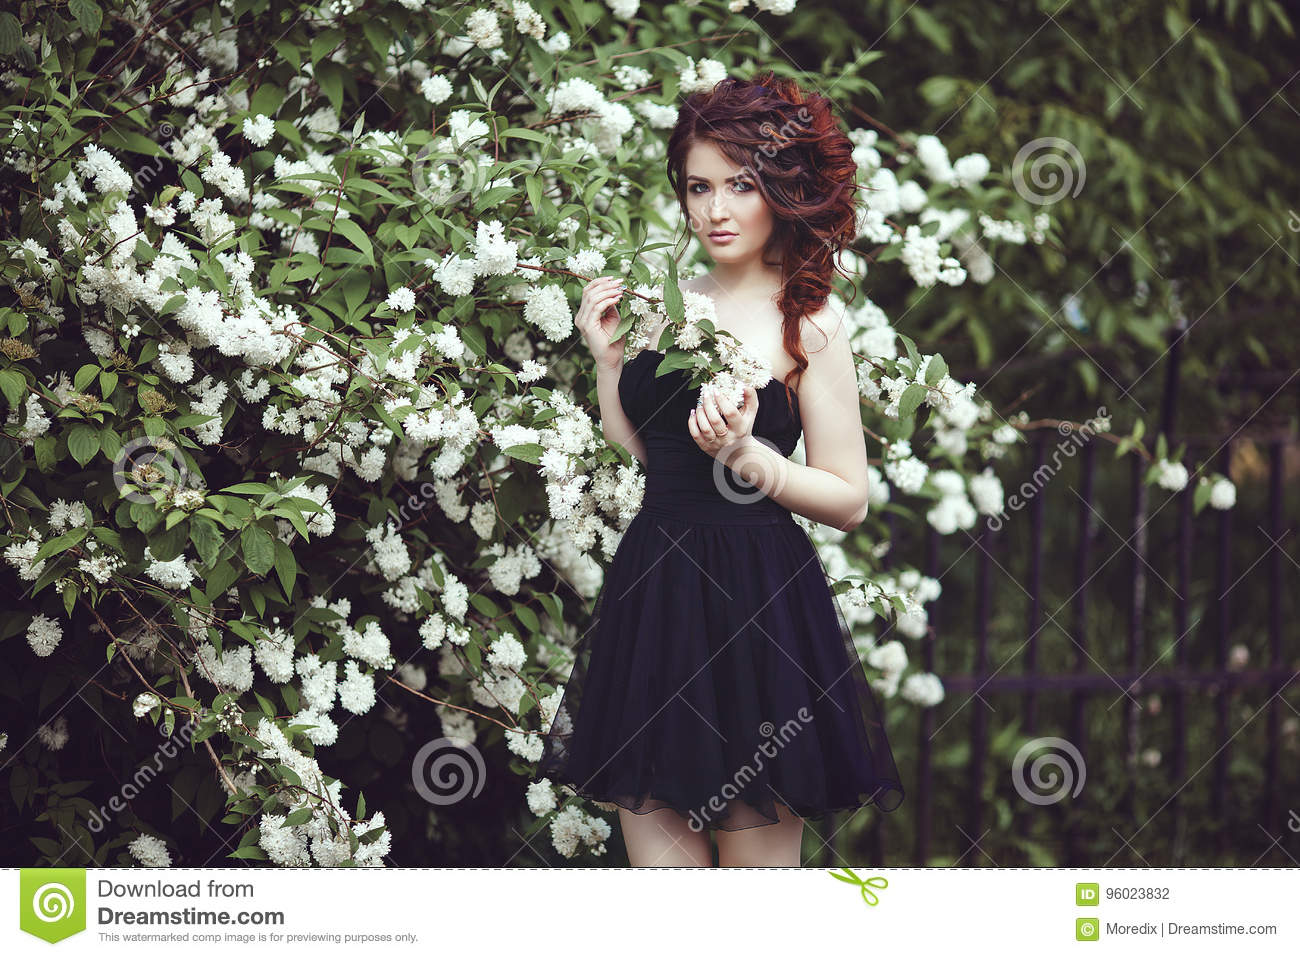 A Beautiful Girl In A Black Dress Poses Near A Bush With White